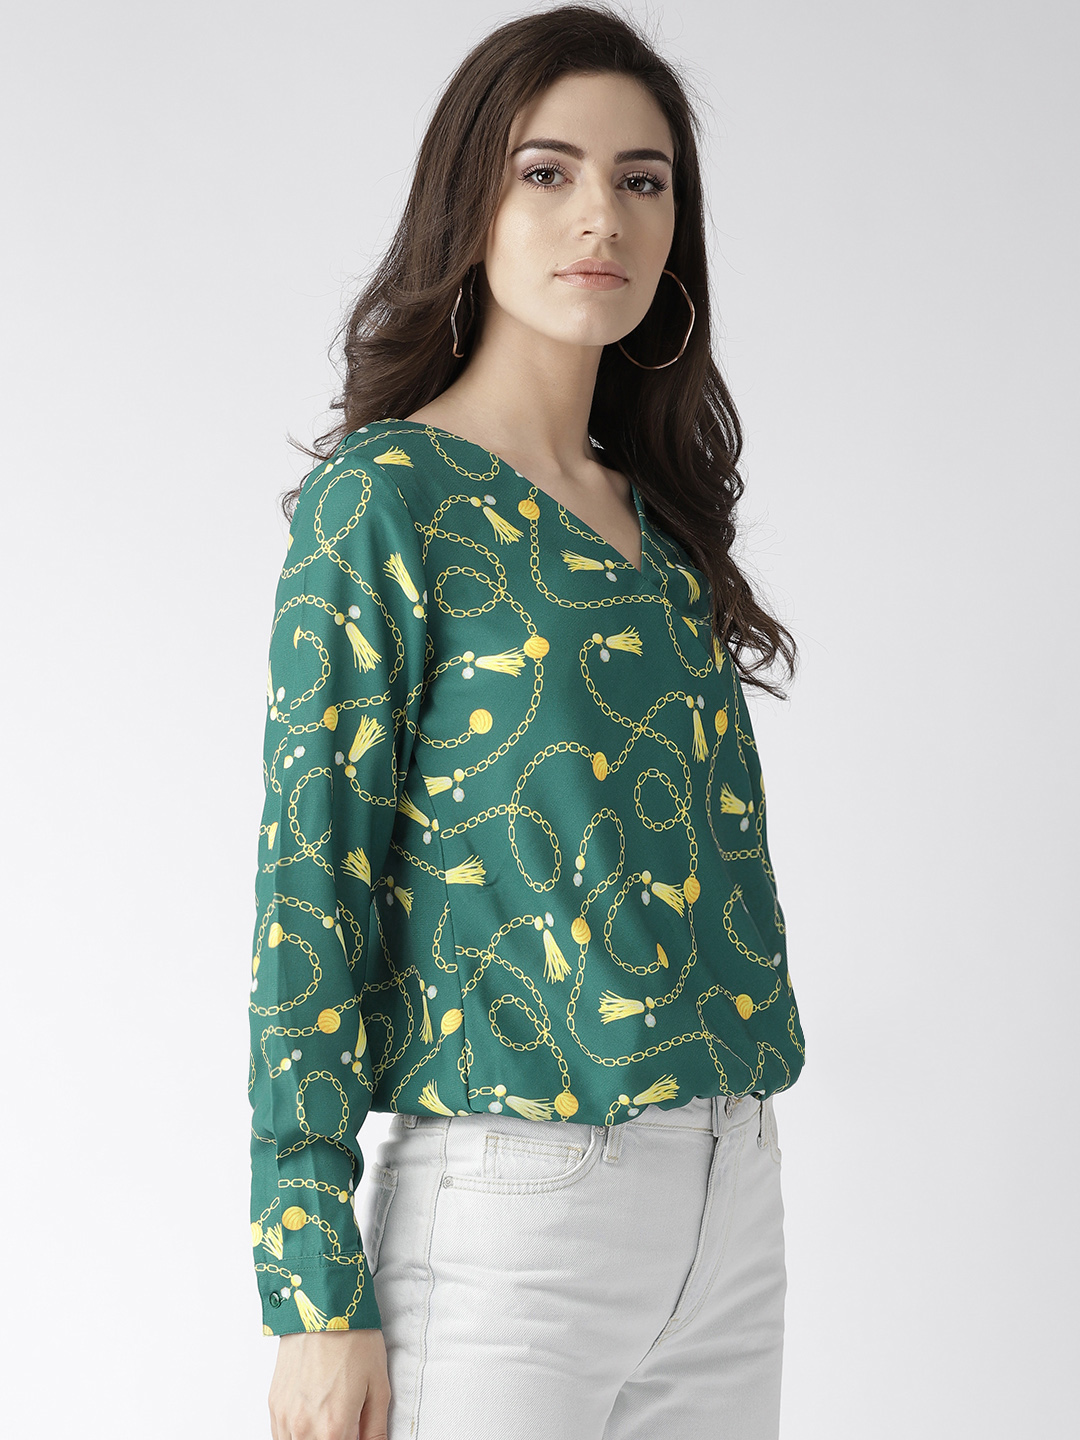 Tops-Prints On My Mind Wrap Top6